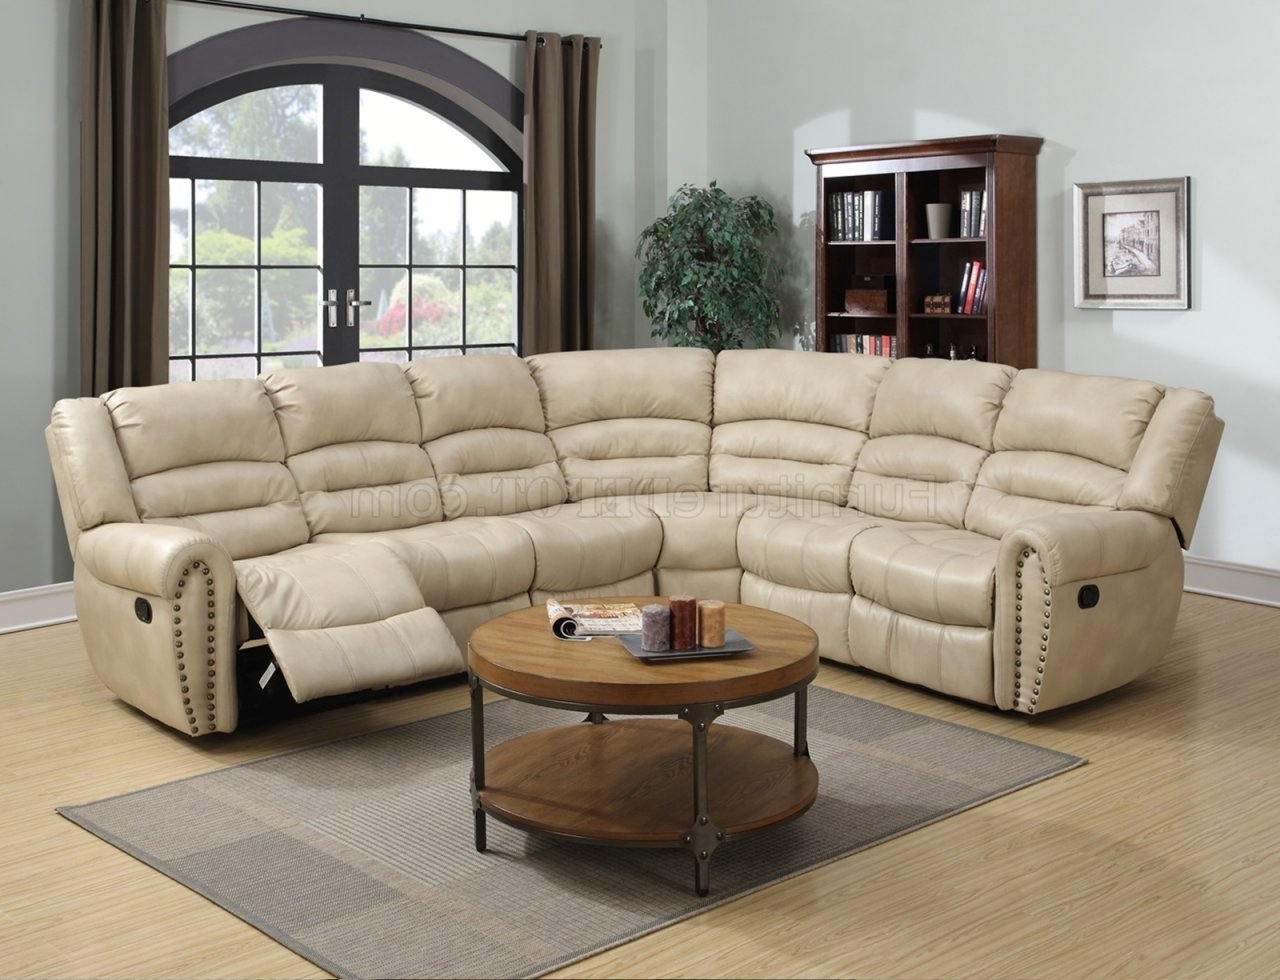 G687 Motion Sectional Sofa In Beige Bonded Leatherglory In Most Current Leather Motion Sectional Sofas (View 6 of 15)